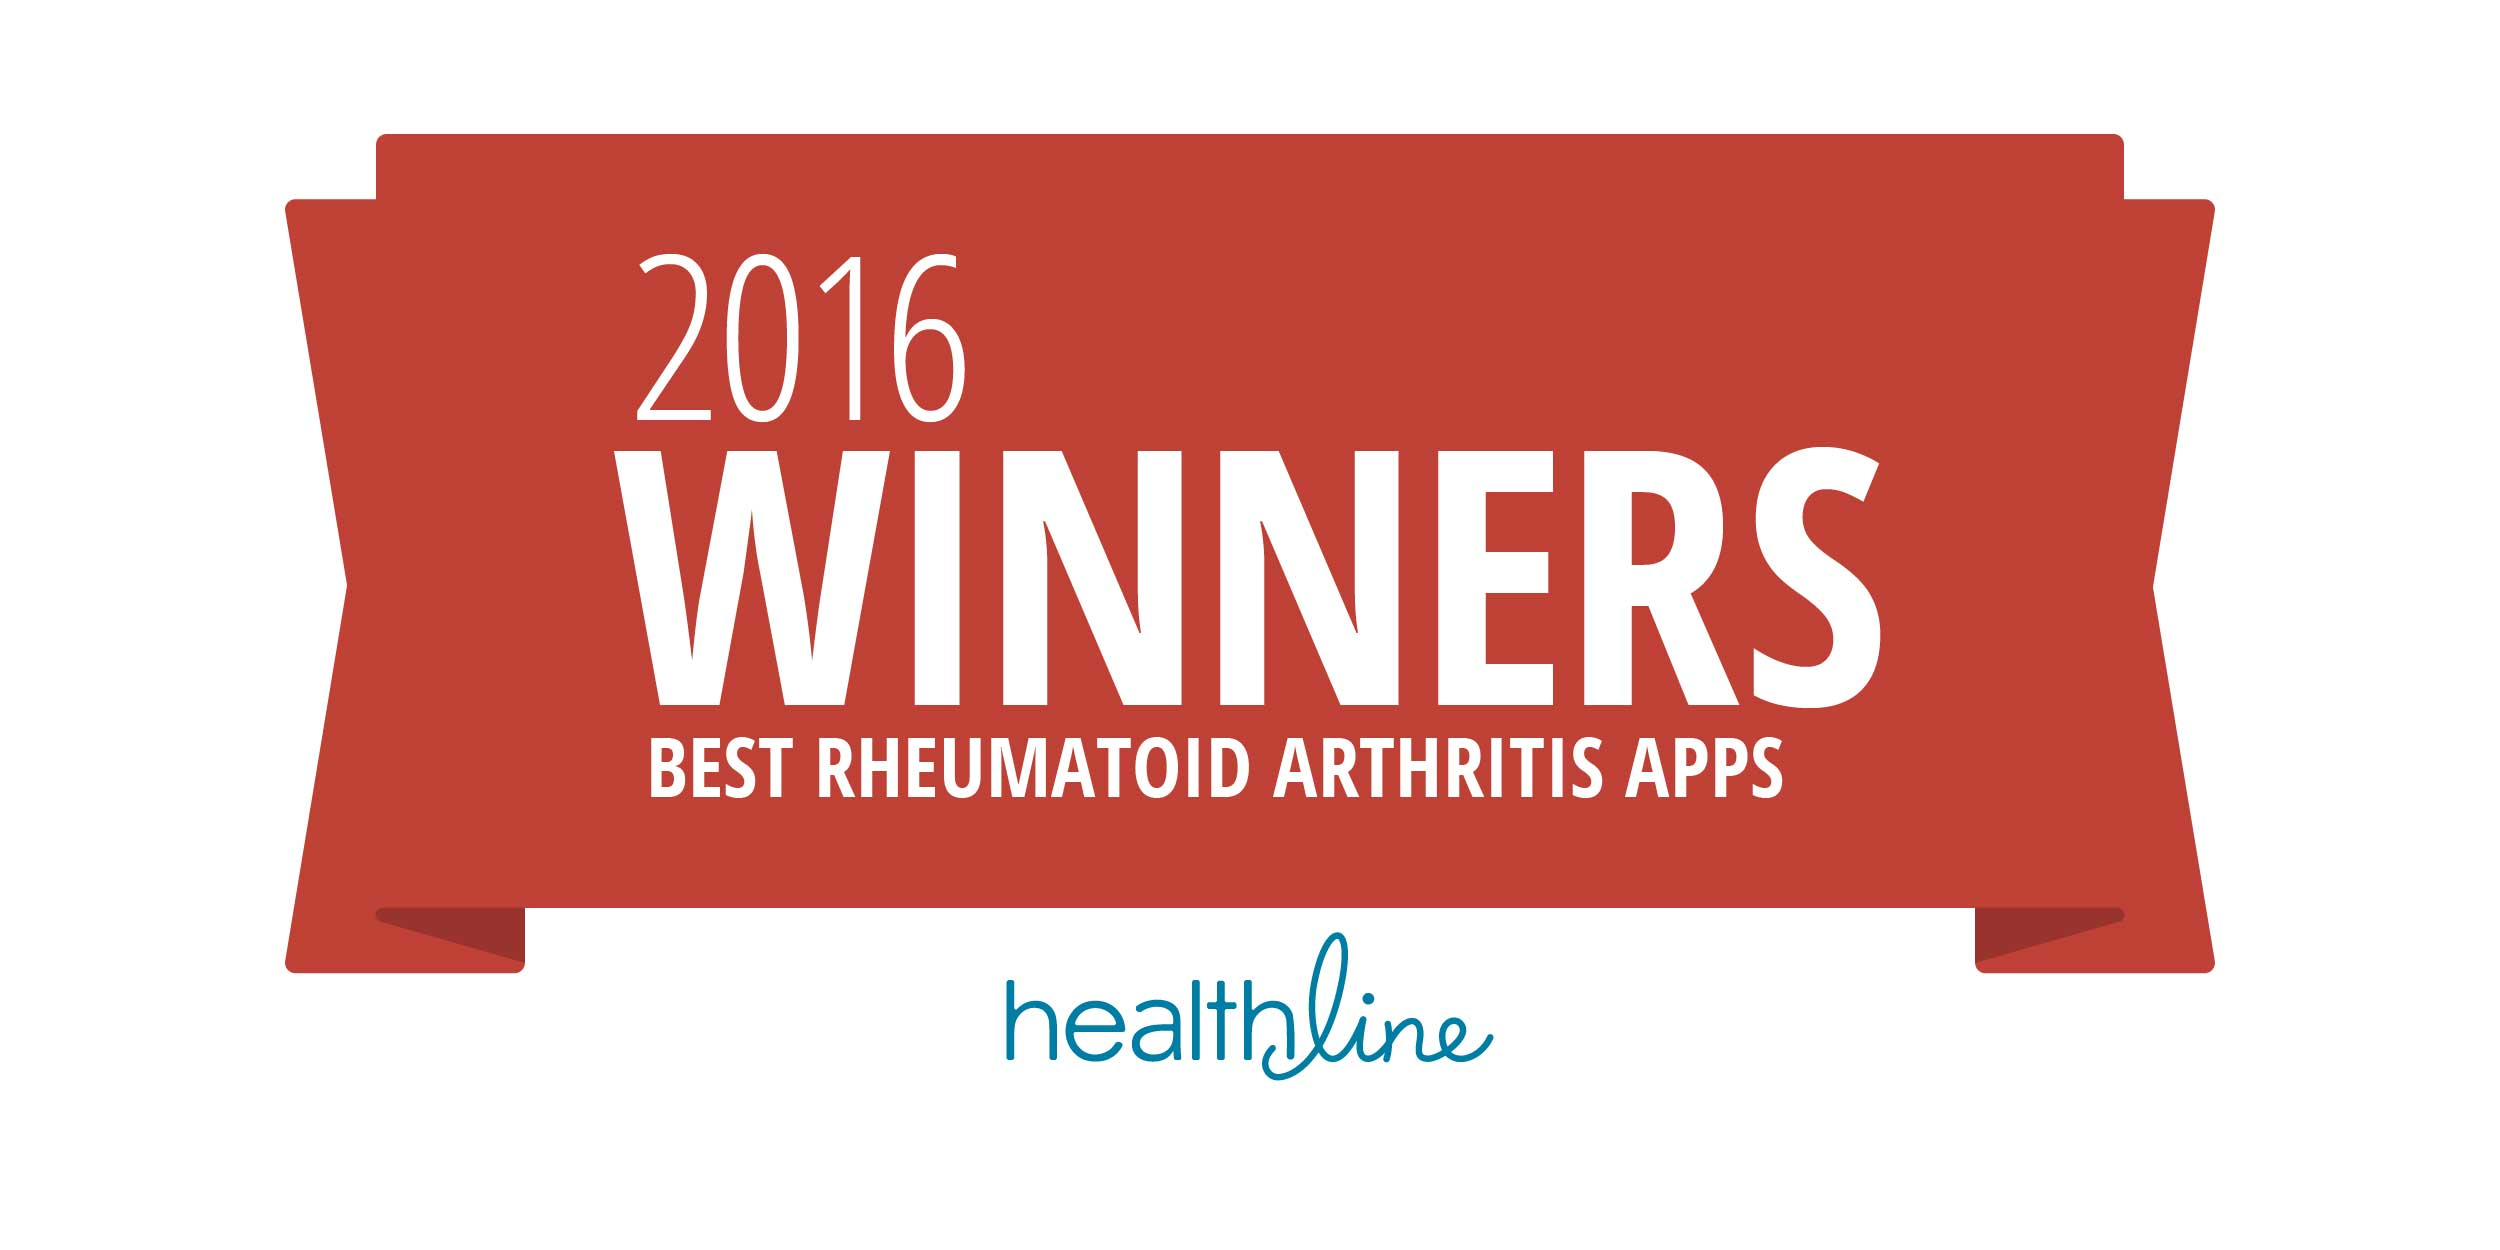 best rheumatoid arthritis apps